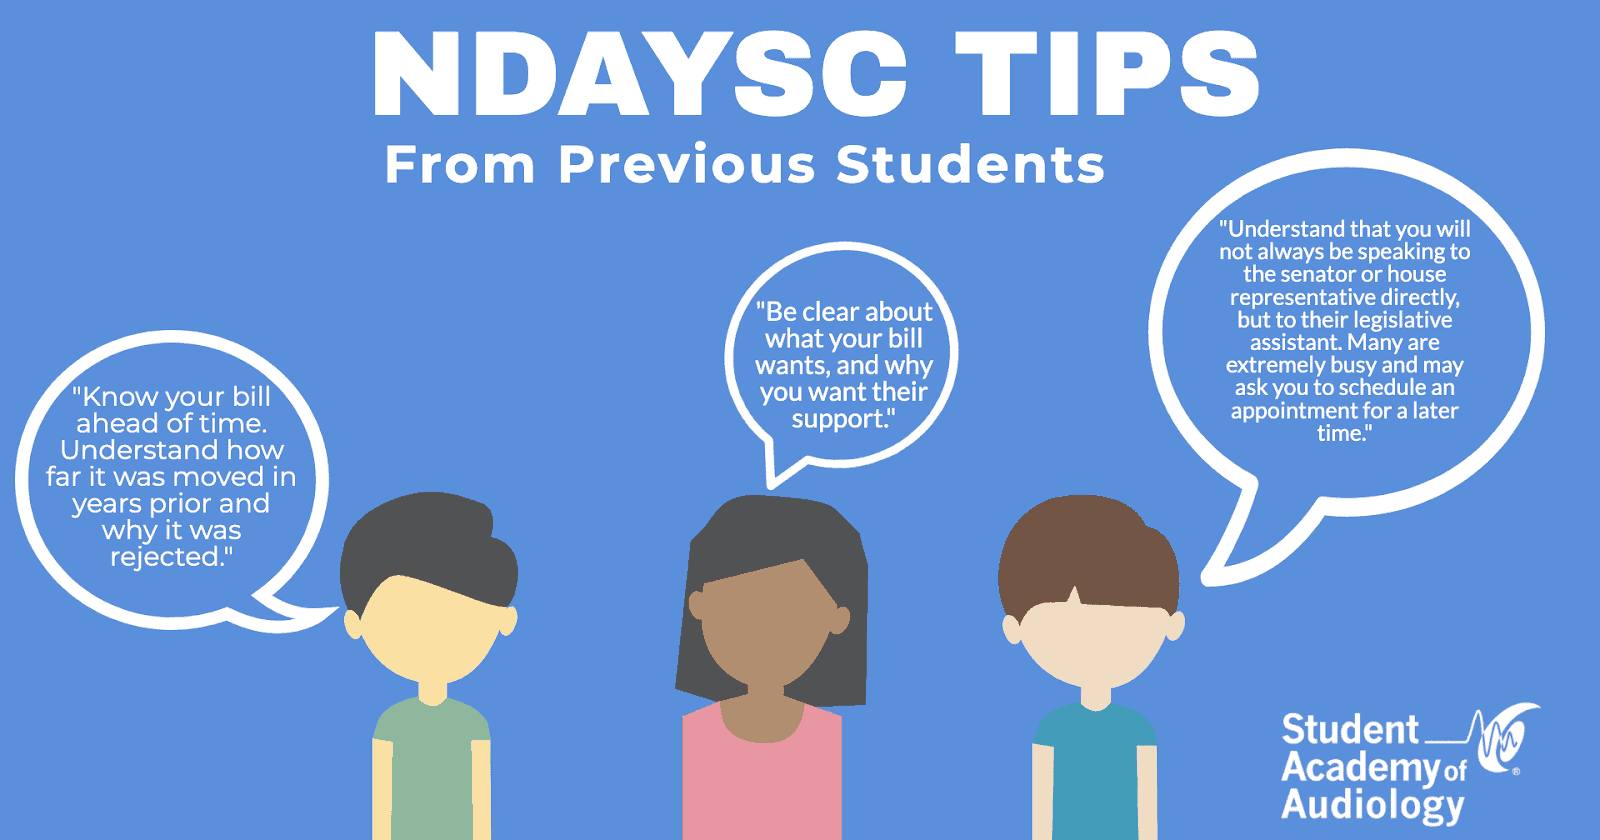 Tips from Previous Students